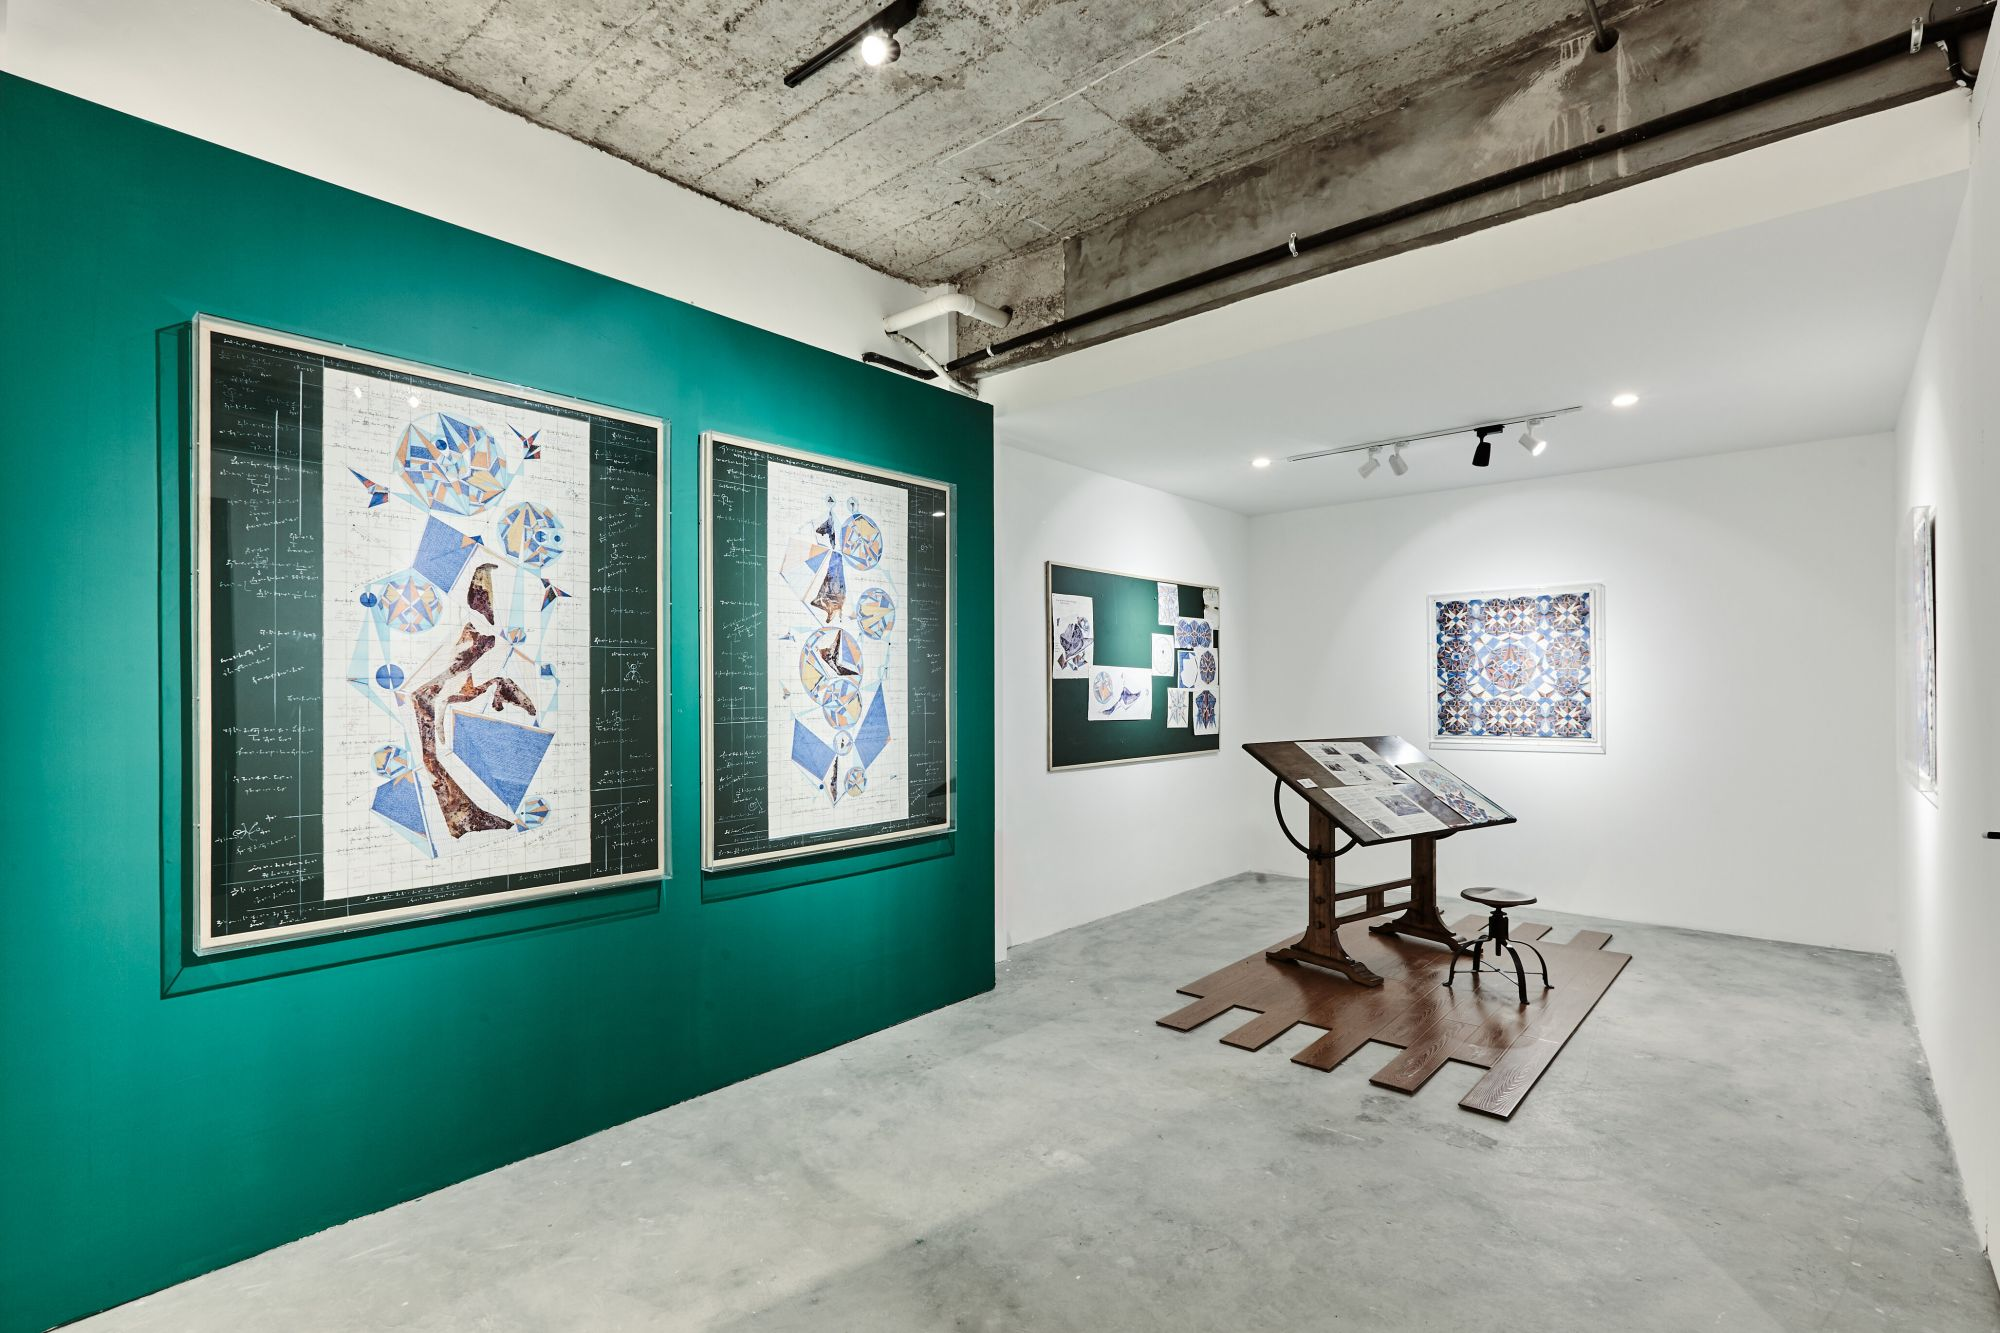 The Artling Unveils Artling Projects, a New Venture to Mark its 7th Anniversary